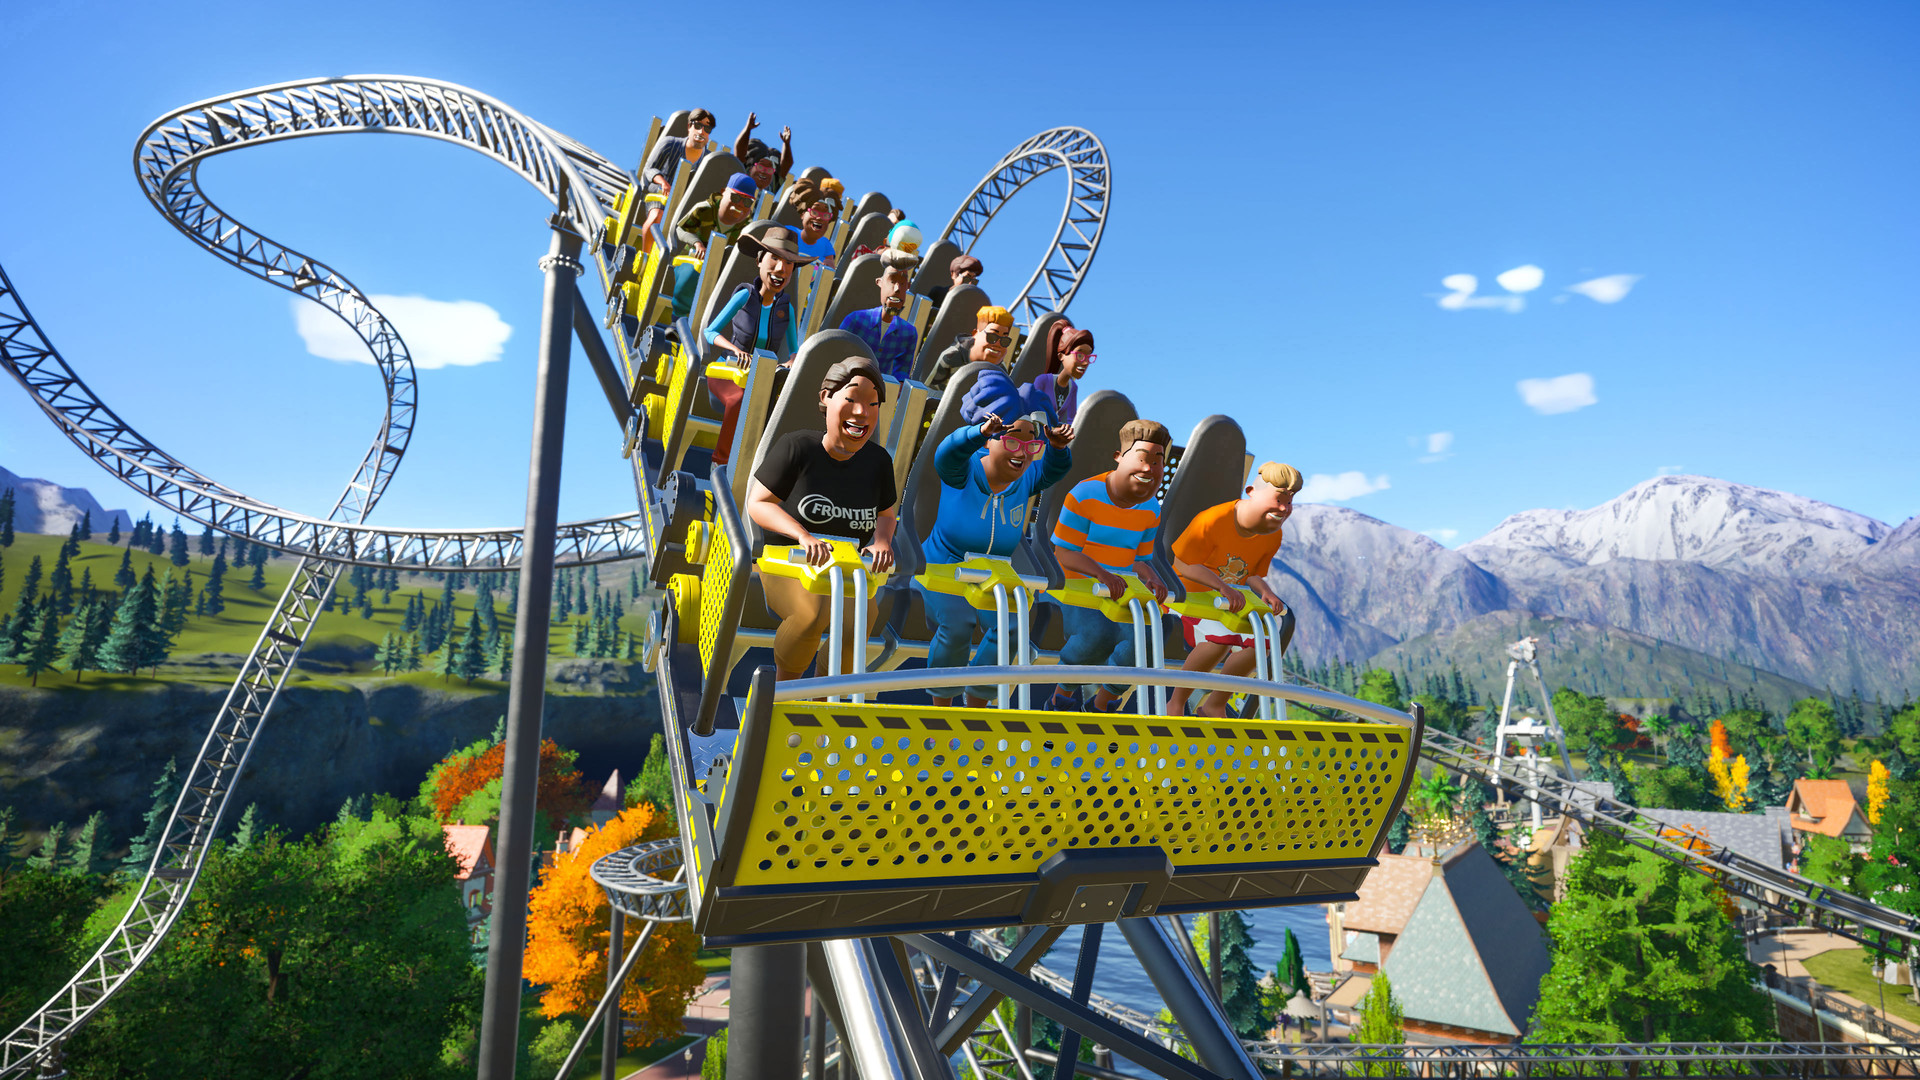 Get on some of the best theme park rides while you are at home